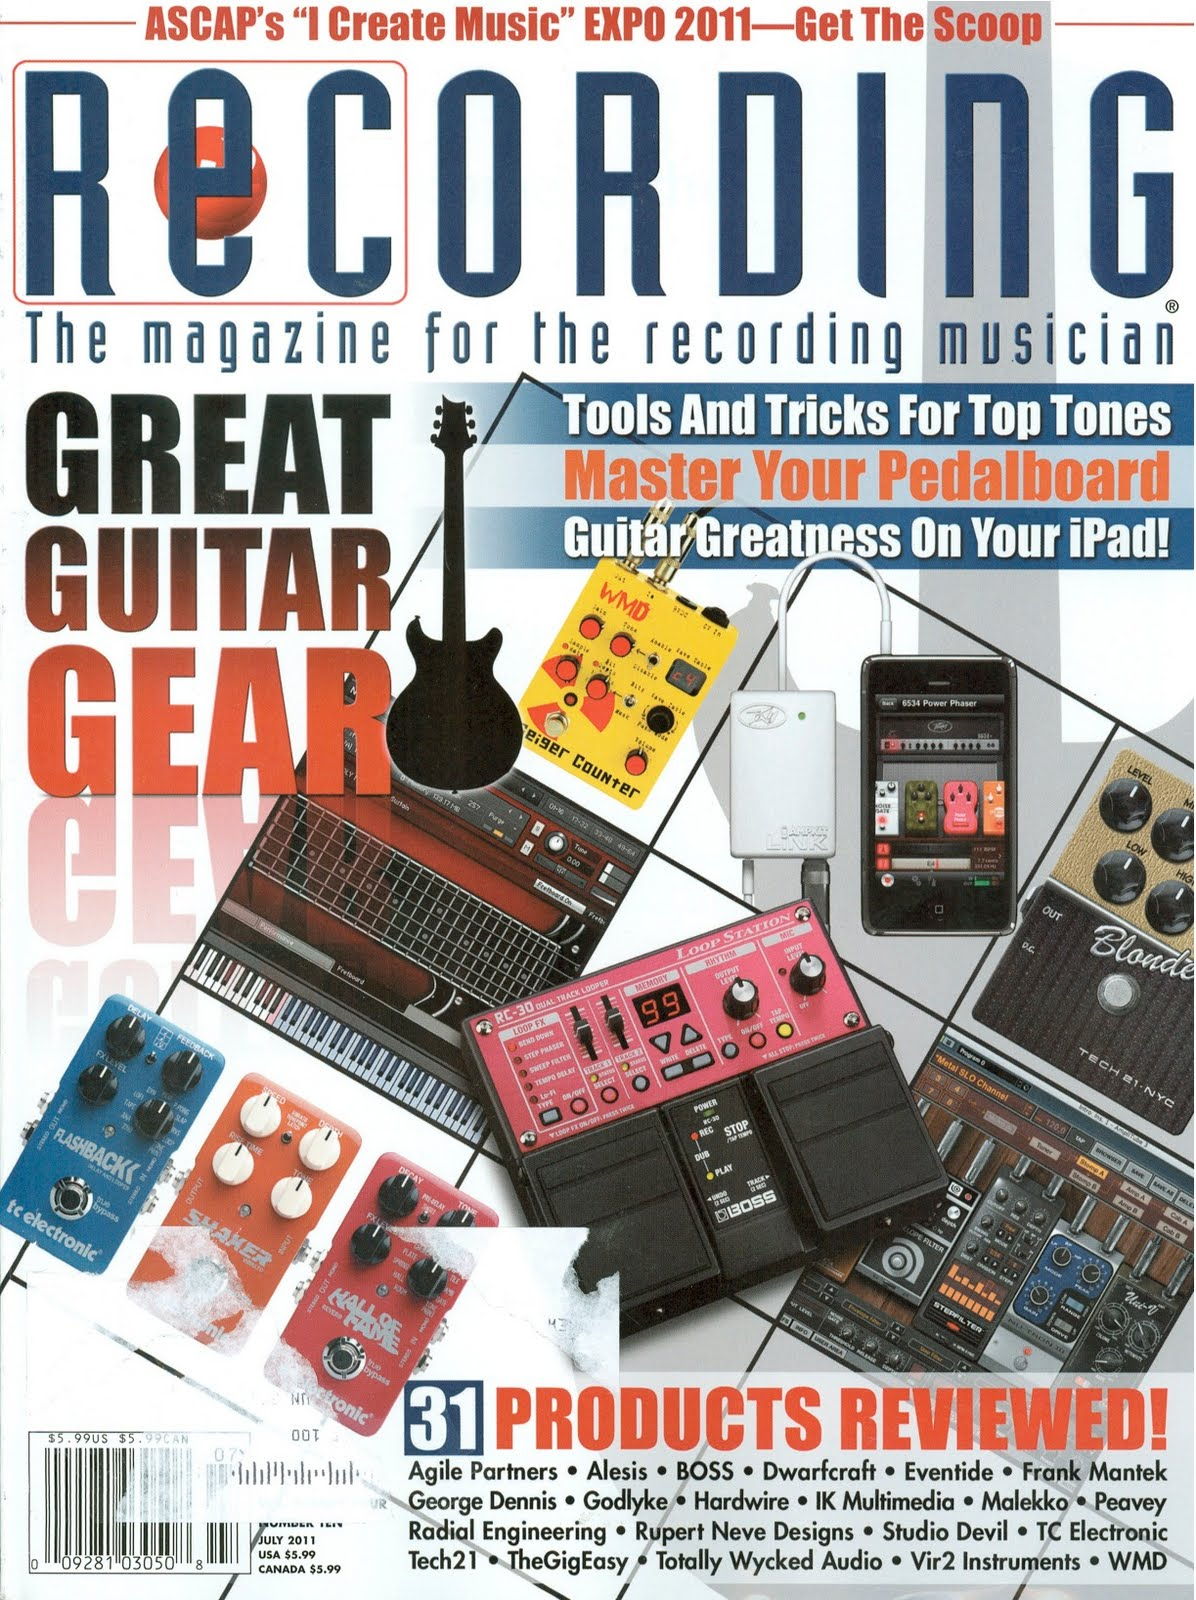 5 Resources For Recording Your Music